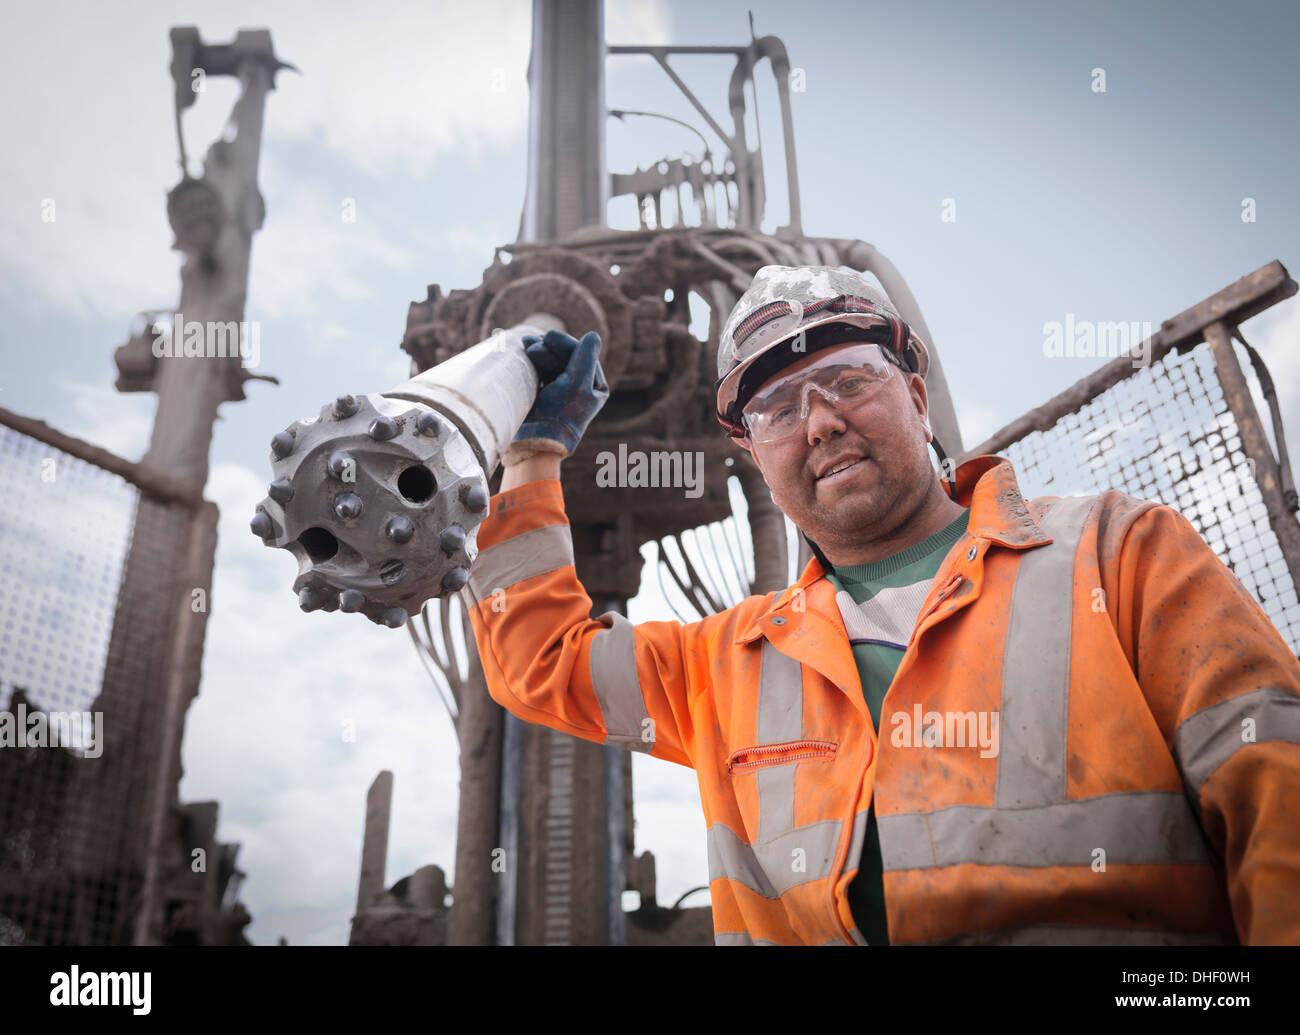 Portrait of drilling rig worker in hard hat and workwear - Stock Image